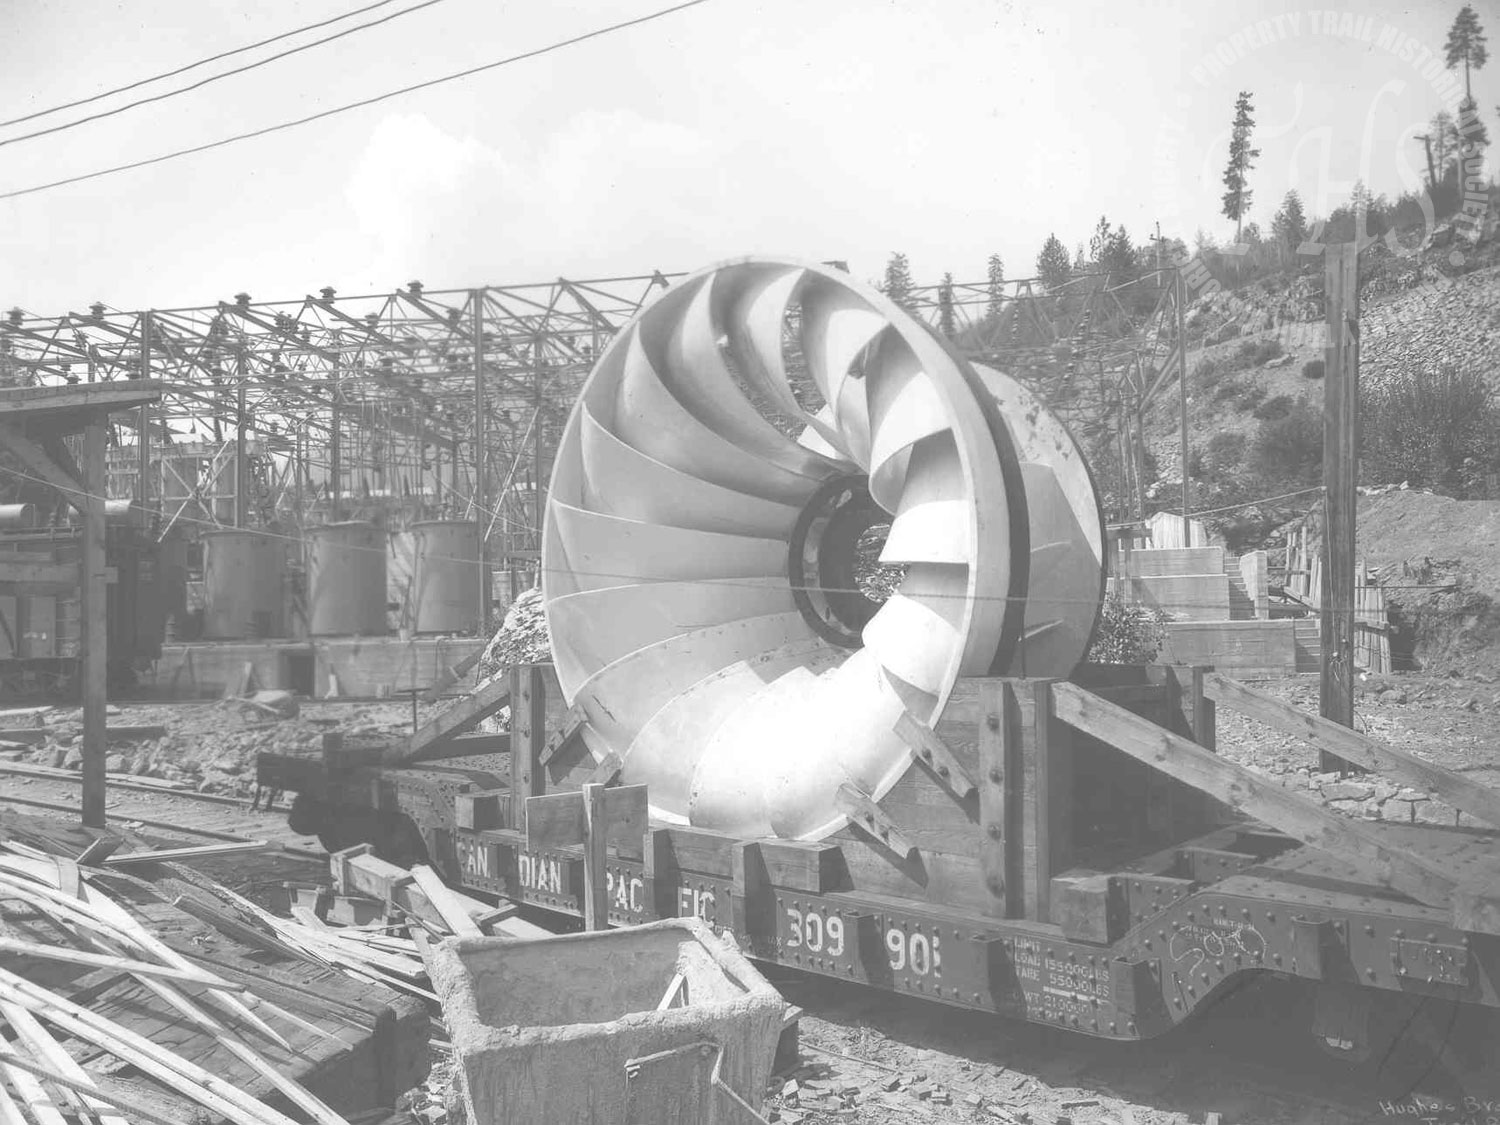 New turbine (water wheel) for Lower Bonnington Powerhouse on train bed (Hughes) - 1925